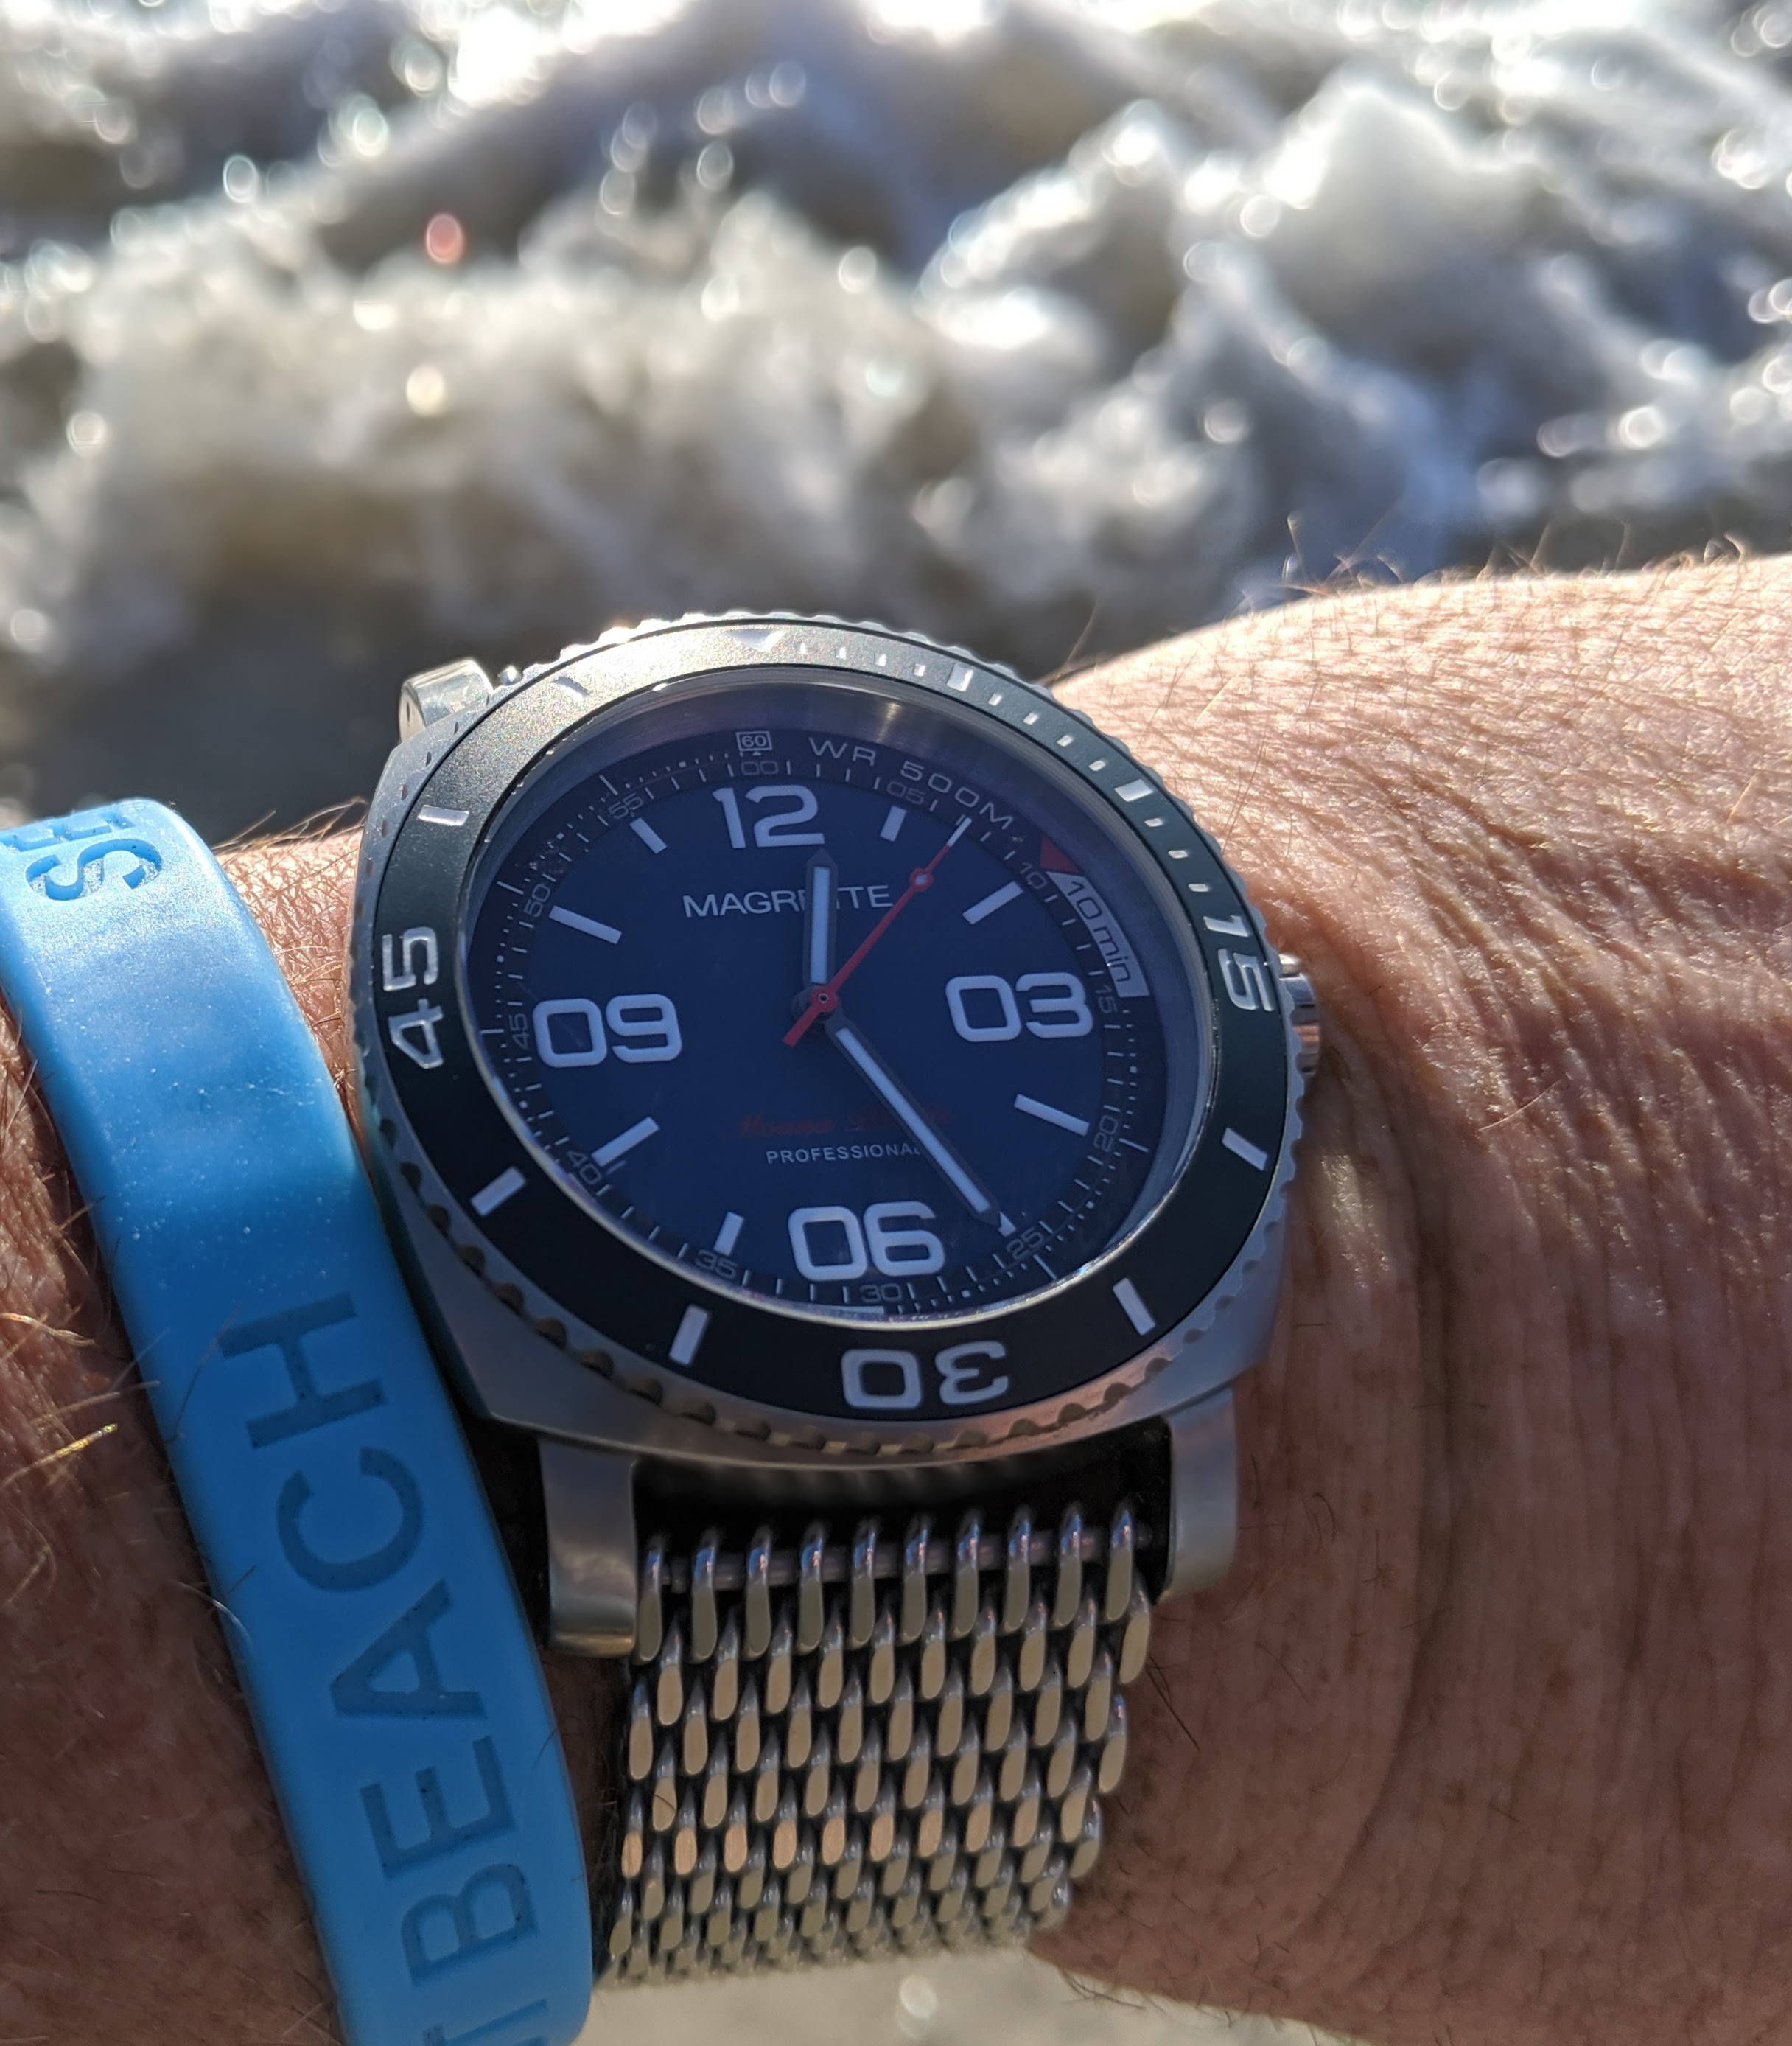 Magrette Moana Pacific Professional Kara titanium watch